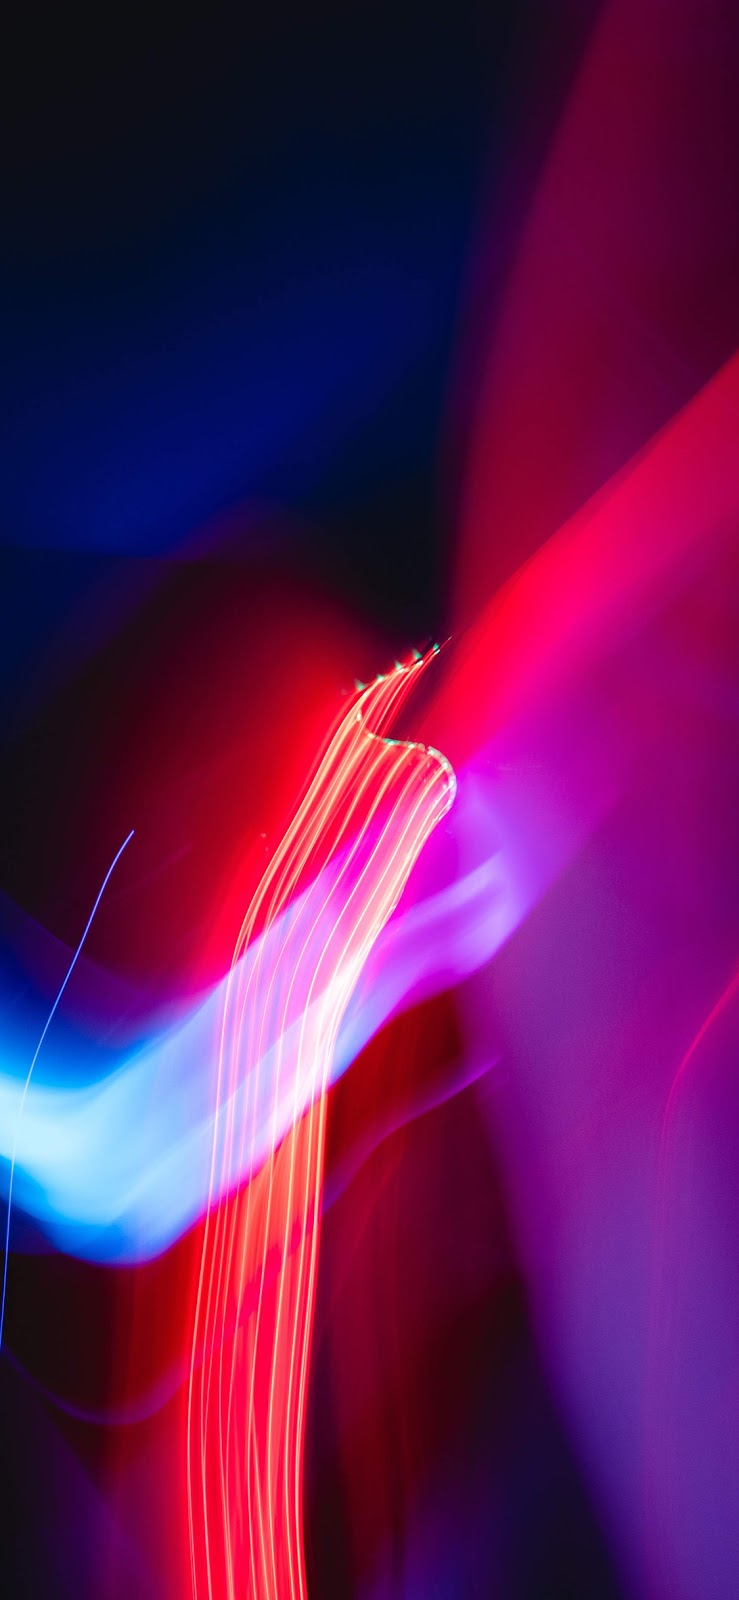 colorful wallpaper iphone x